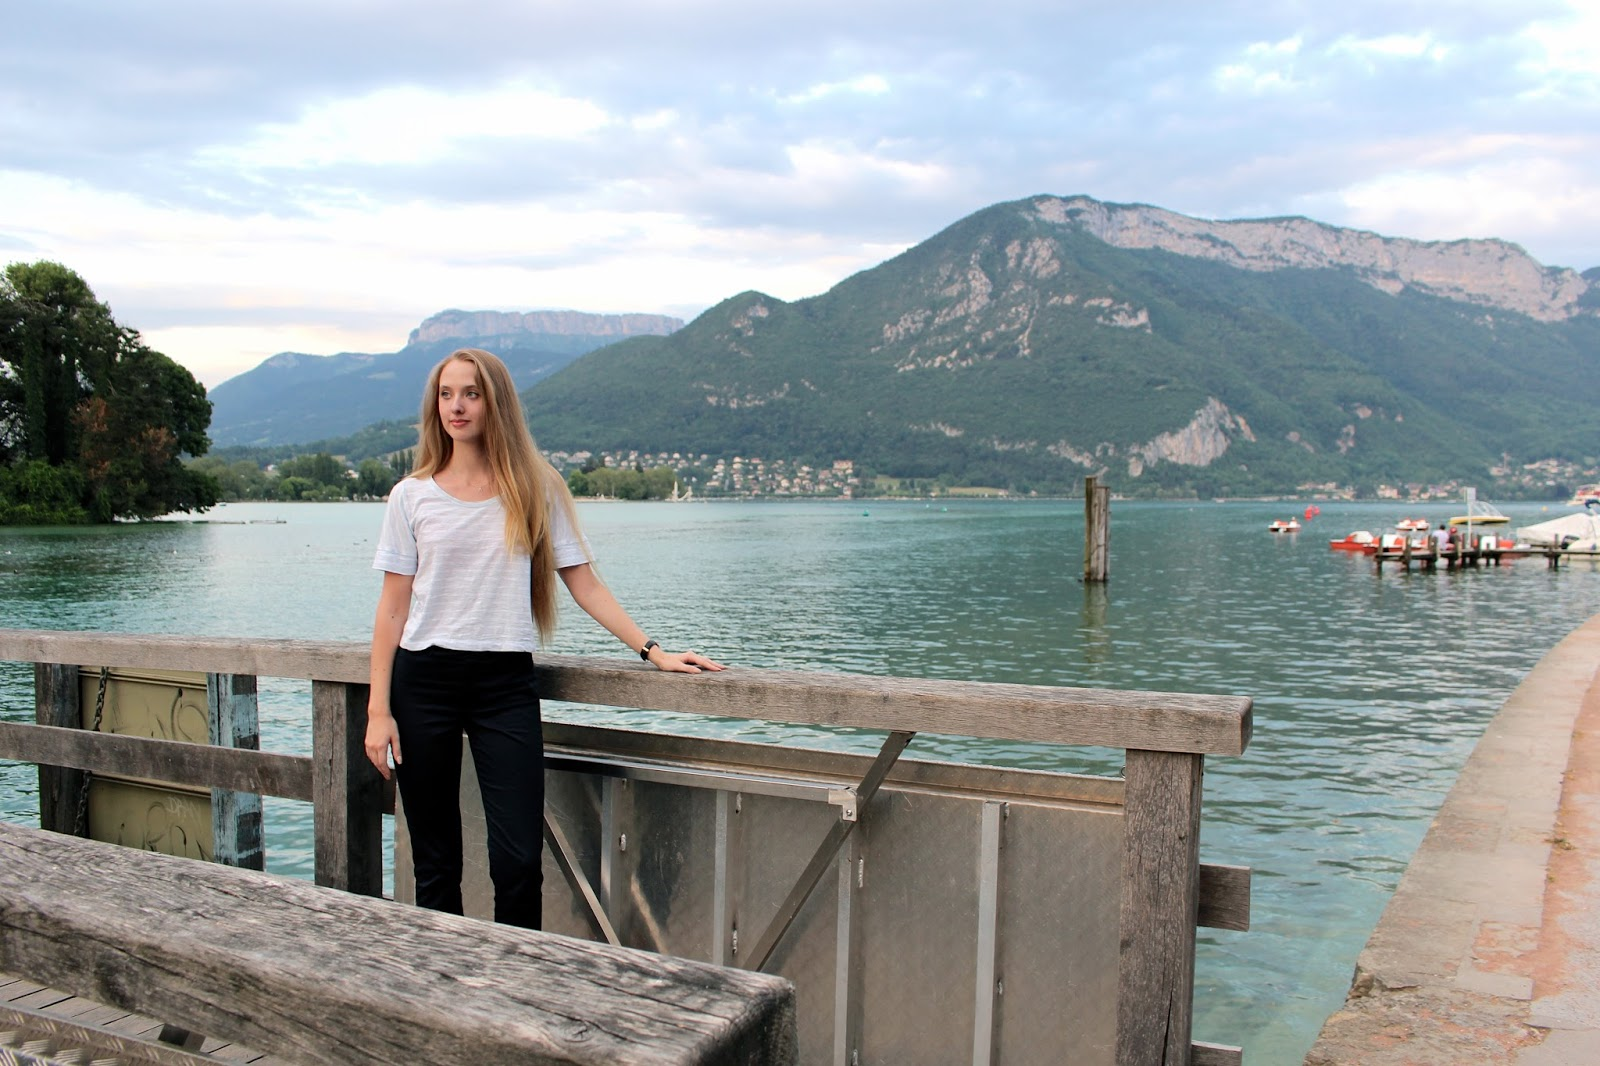 Lifestyle blogger travel diary of 24 hours in Annecy